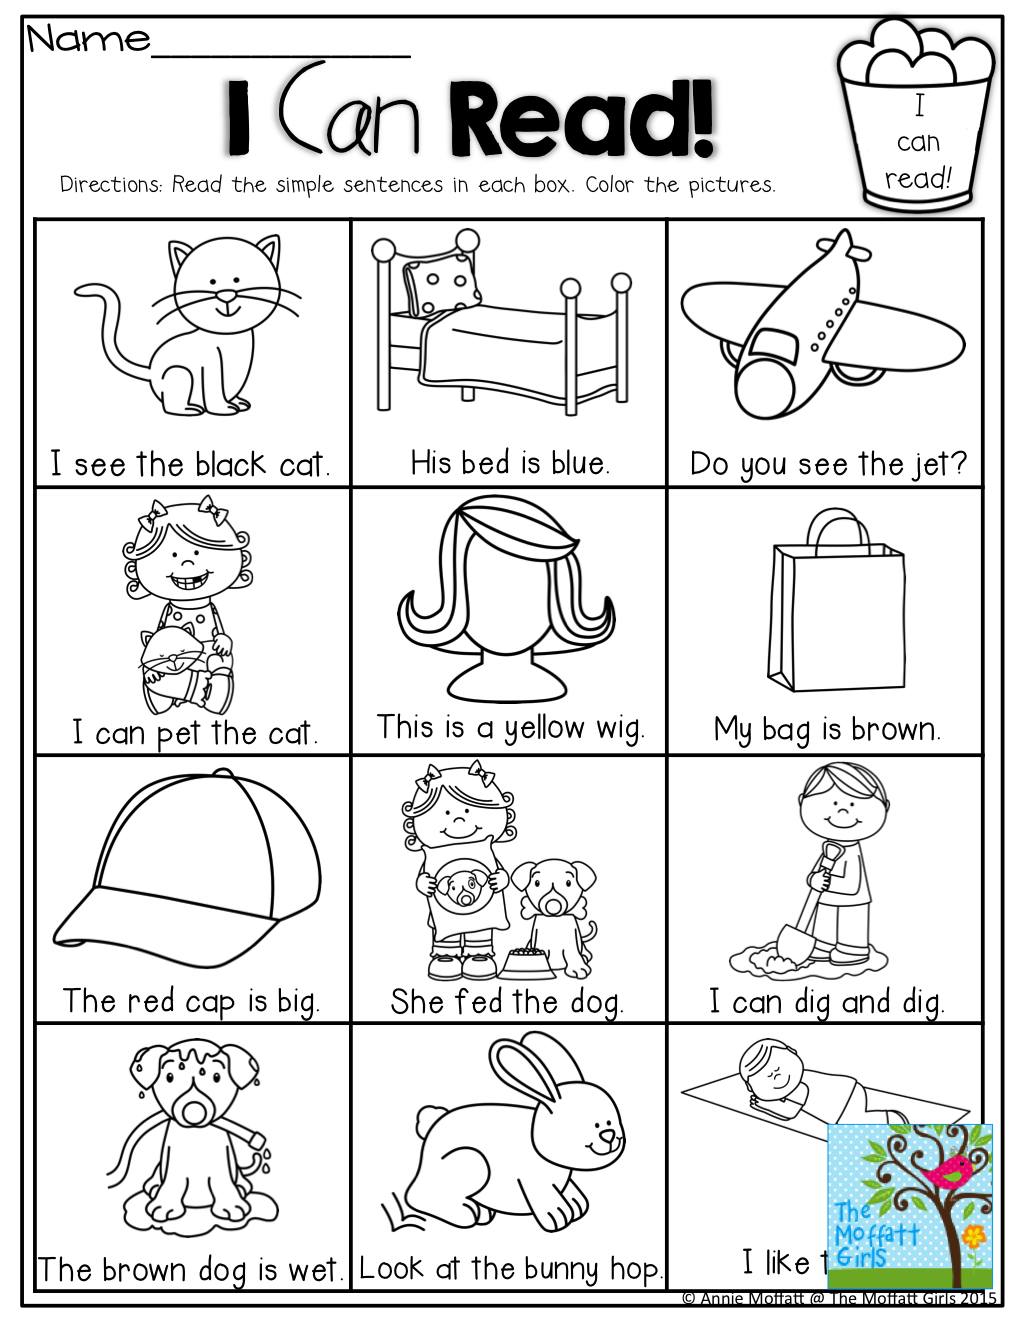 I Can Read Simple Sentences That Kids Can Decode With Sight Words Cvc Words And Color Words